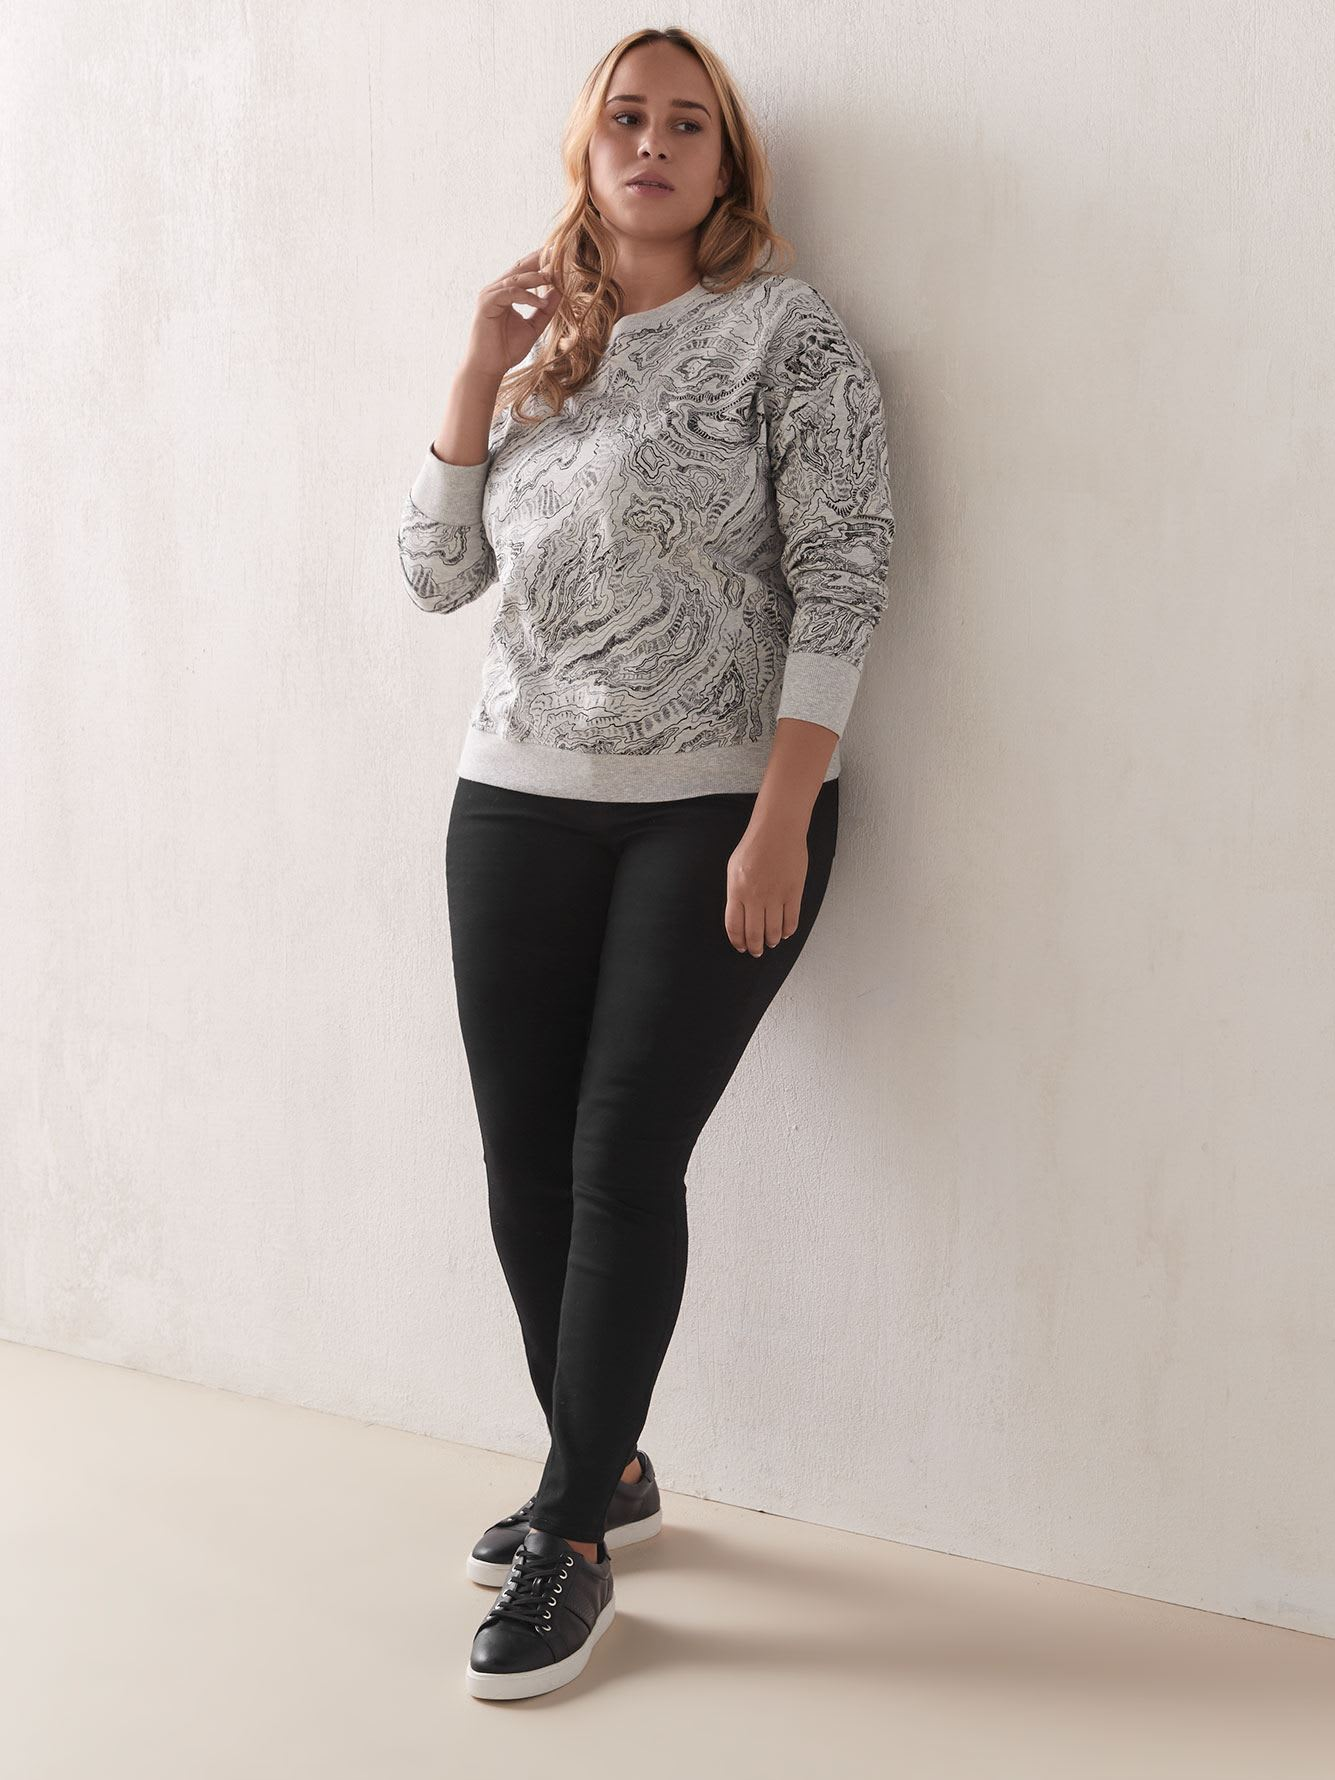 Printed French Terry Sweatshirt - Addition Elle